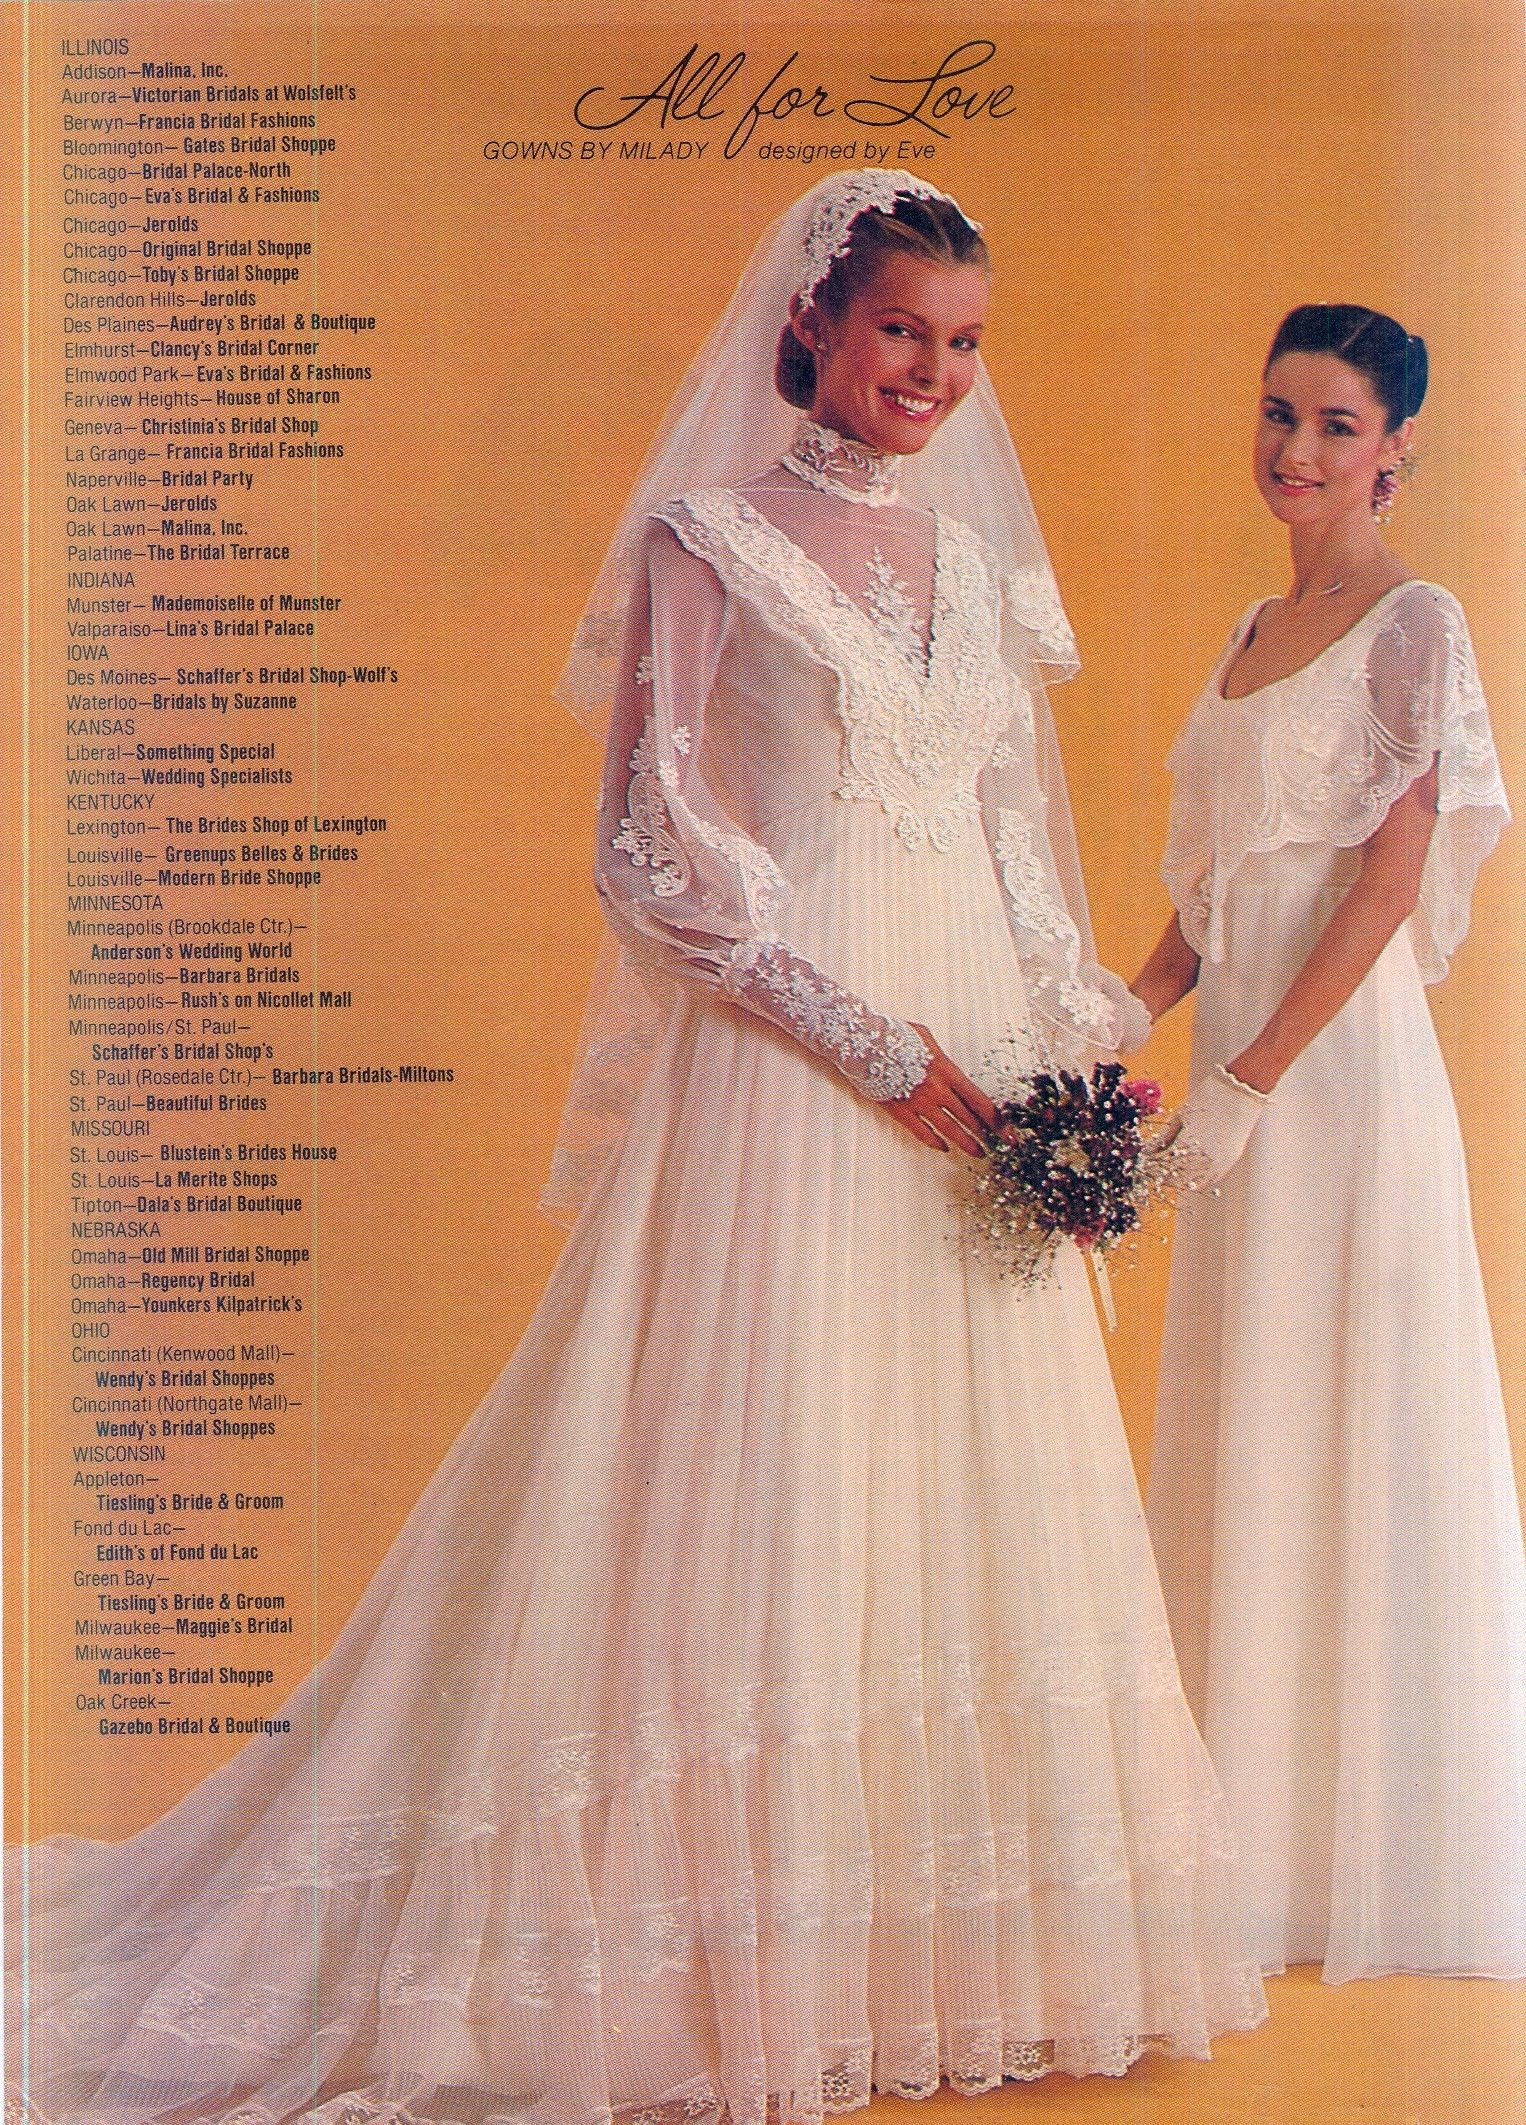 Brides Magazine December 1980 January 1981 1980s Wedding Dress 1970s Designer